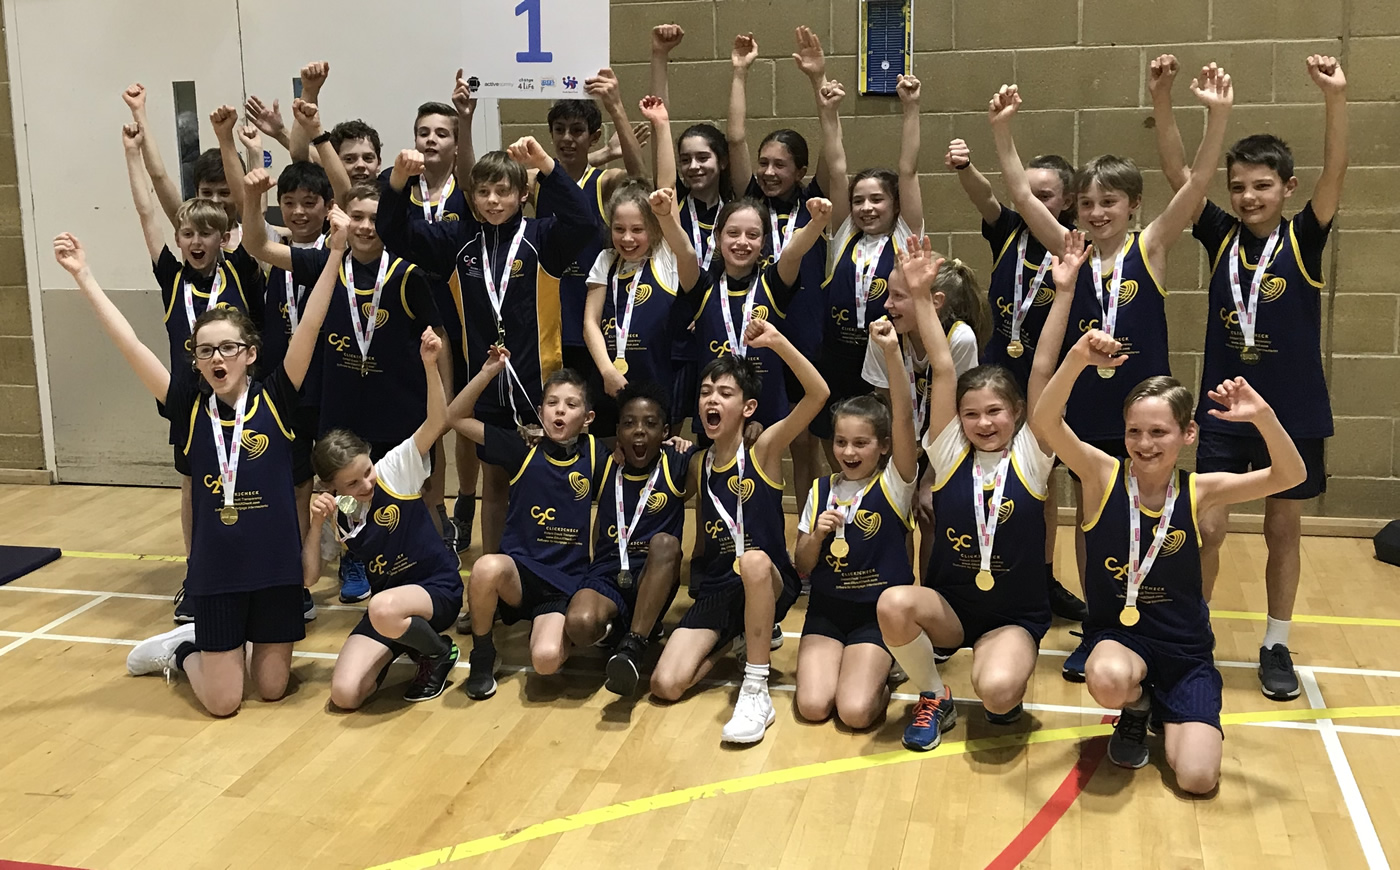 Cleves School Are Sportshall Athletics Surrey County